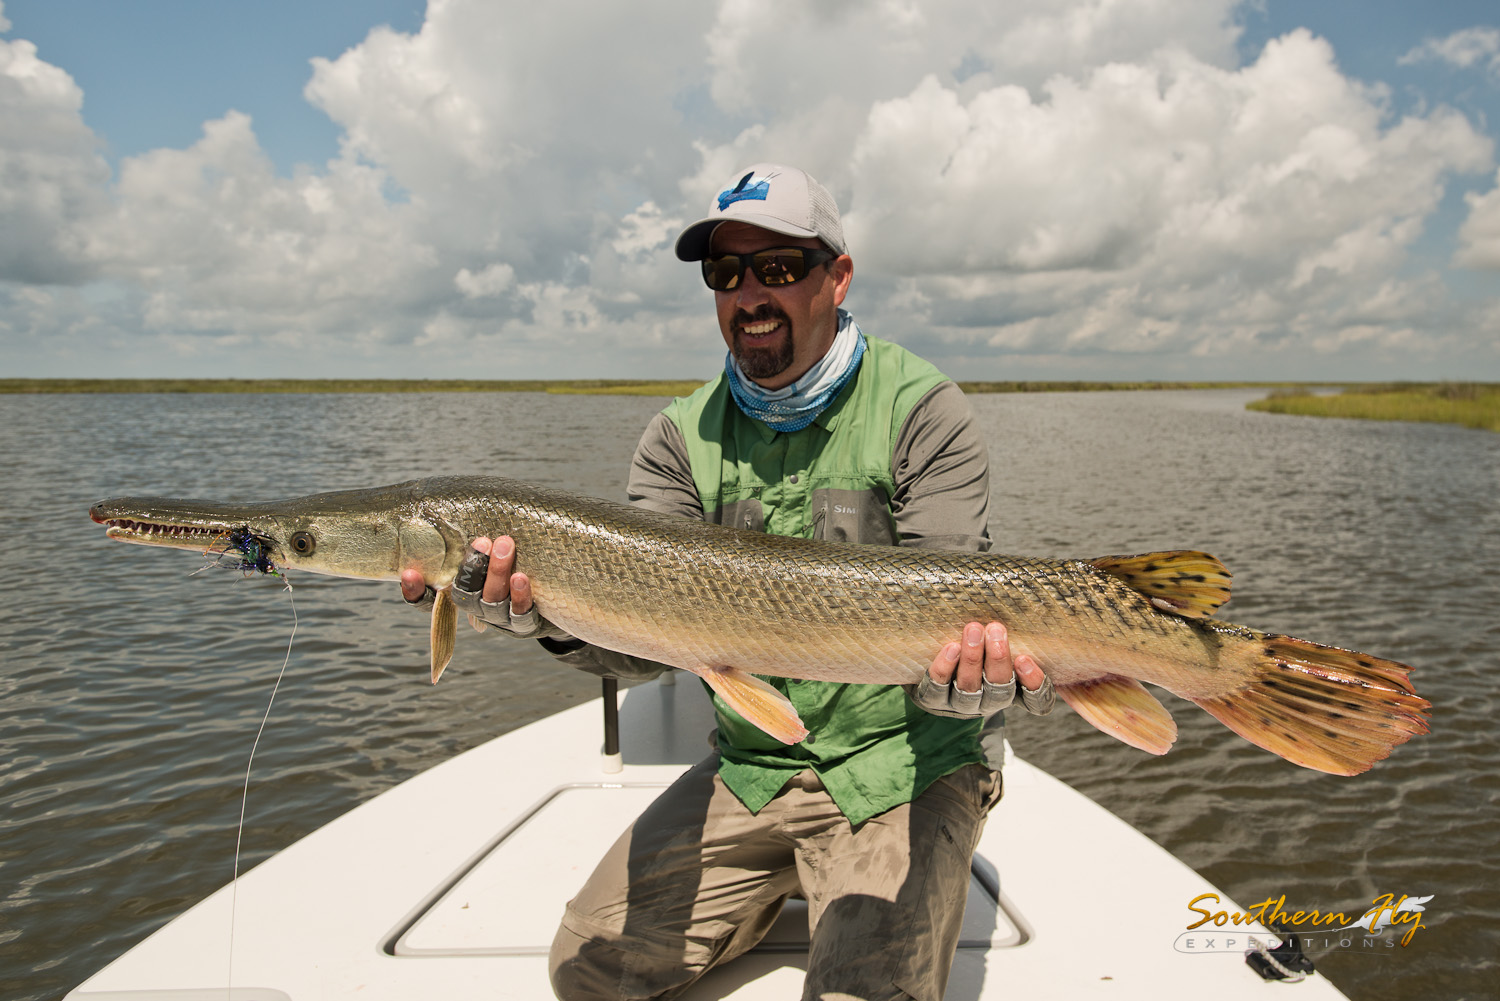 2019-06-29-07-01_SouthernFlyExpeditions_NewOrleans_DanWilcoxAndBrentByquist_Yellowdog-1.jpg